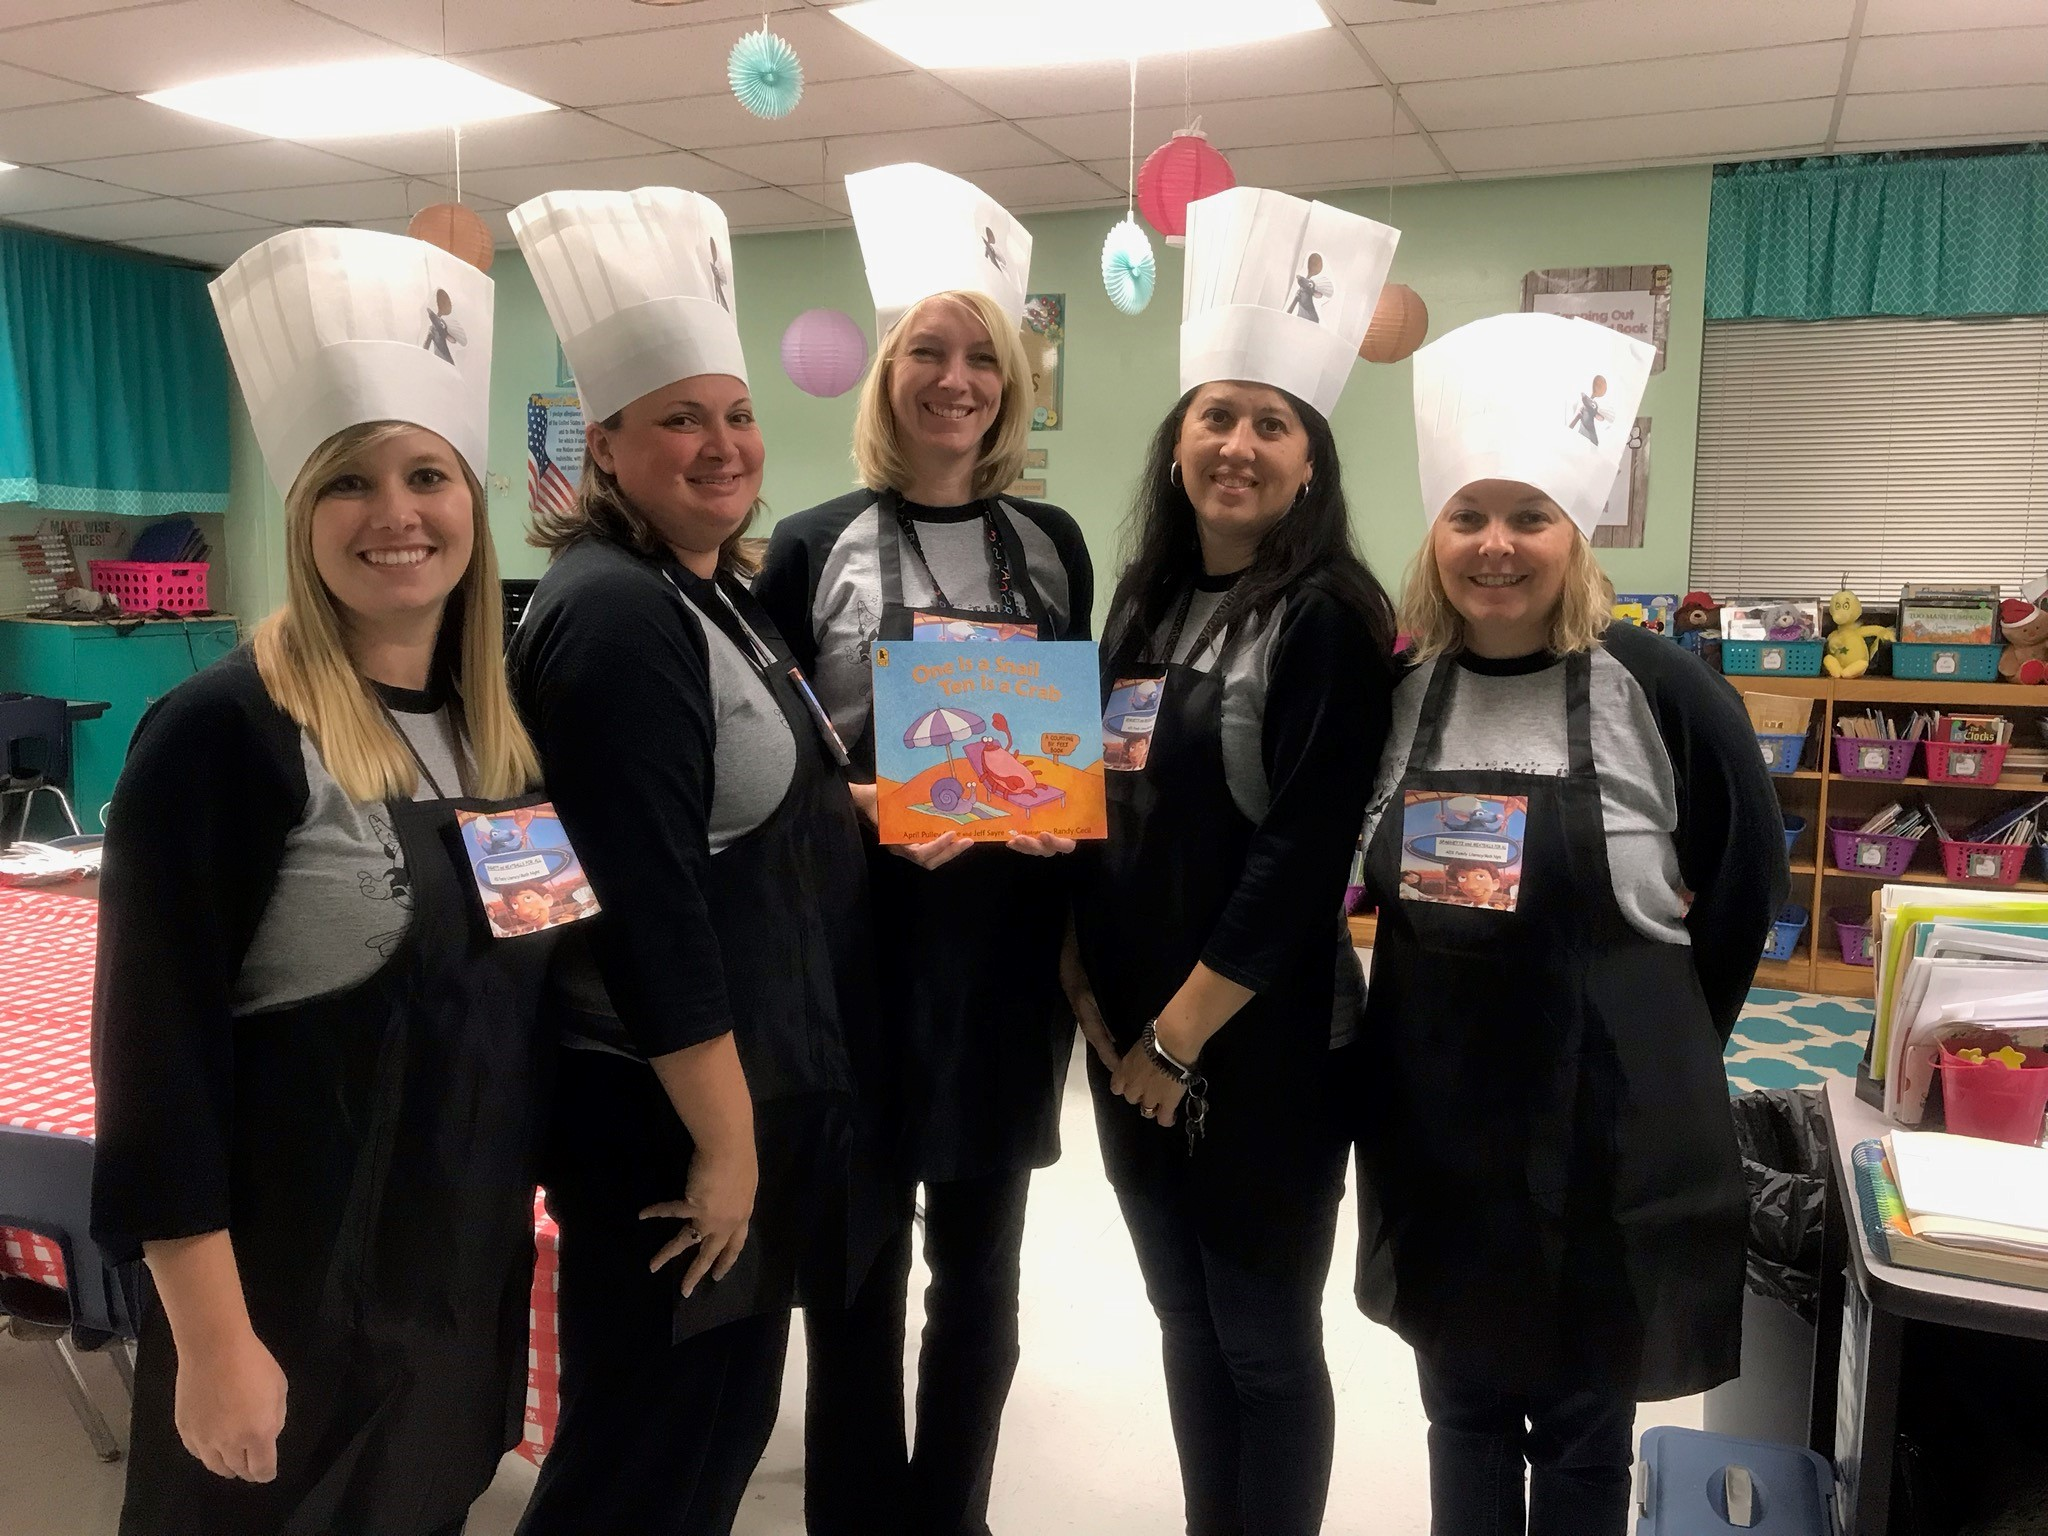 Albany Elementary School hosted a Family Involvement Night, with the theme of Spaghetti and Meatballs for All, on November 13, 2018.